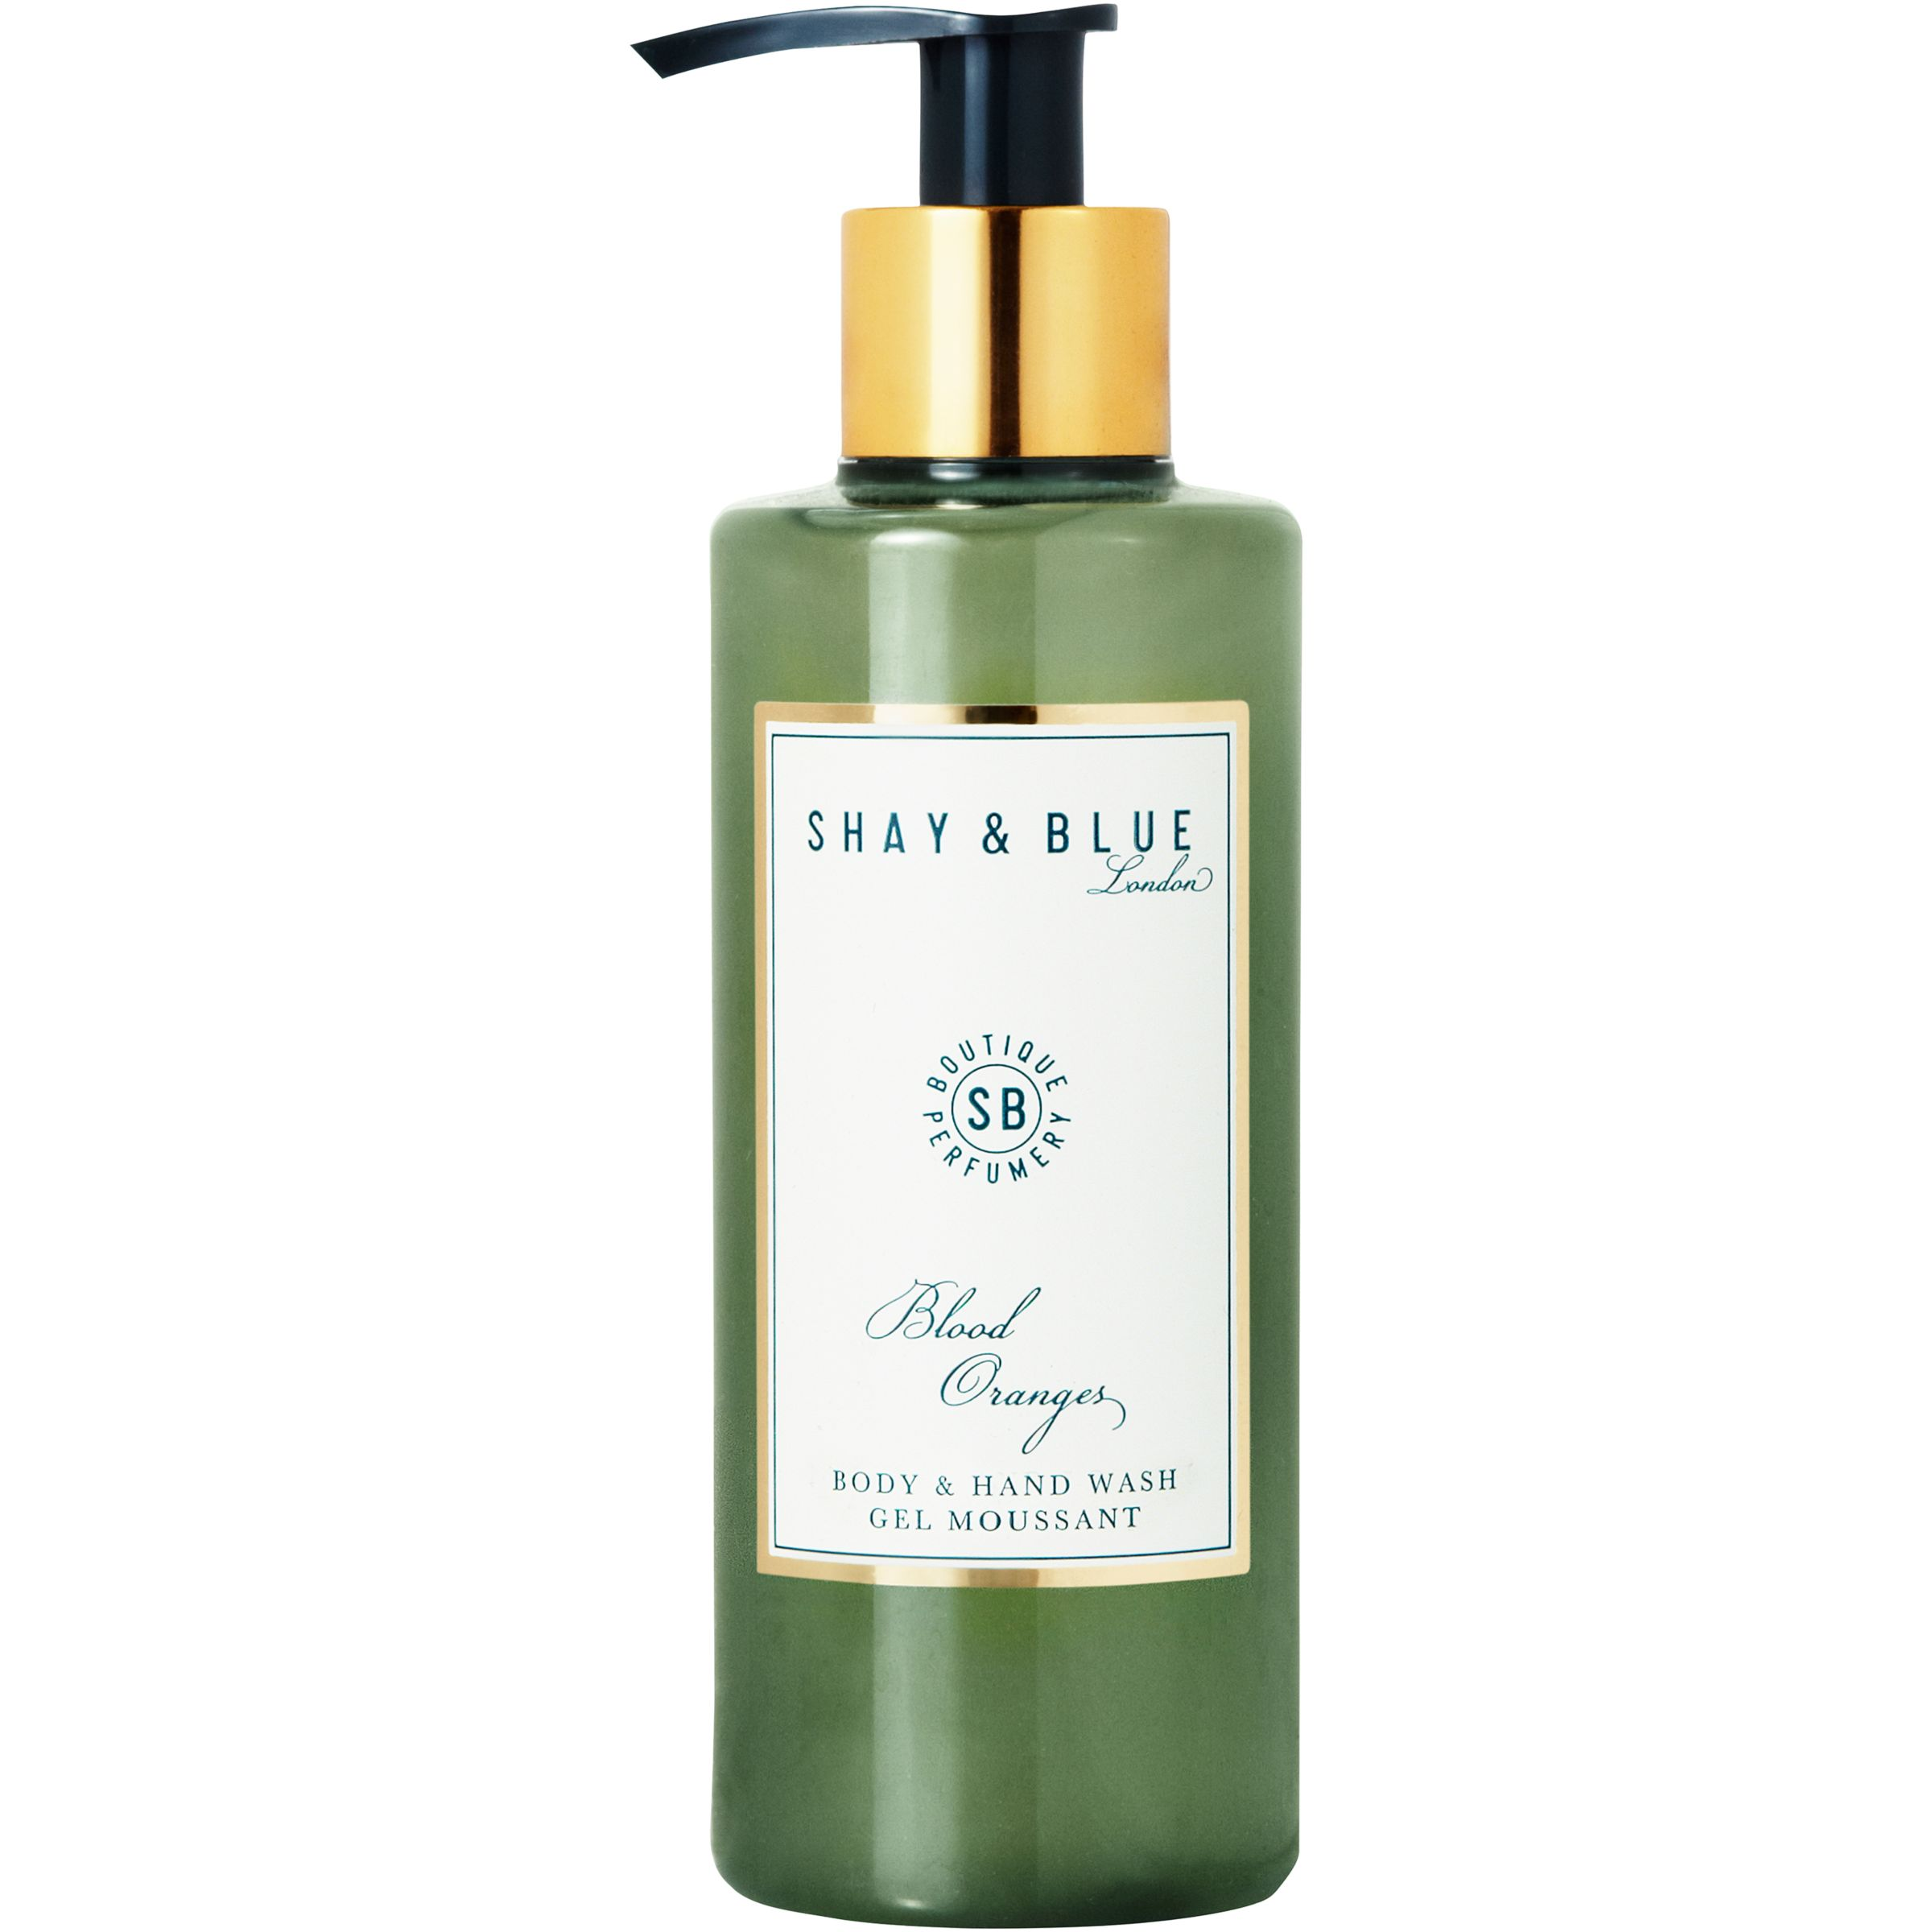 Shay & Blue Shay & Blue Blood Oranges Body & Hand Wash, 200ml